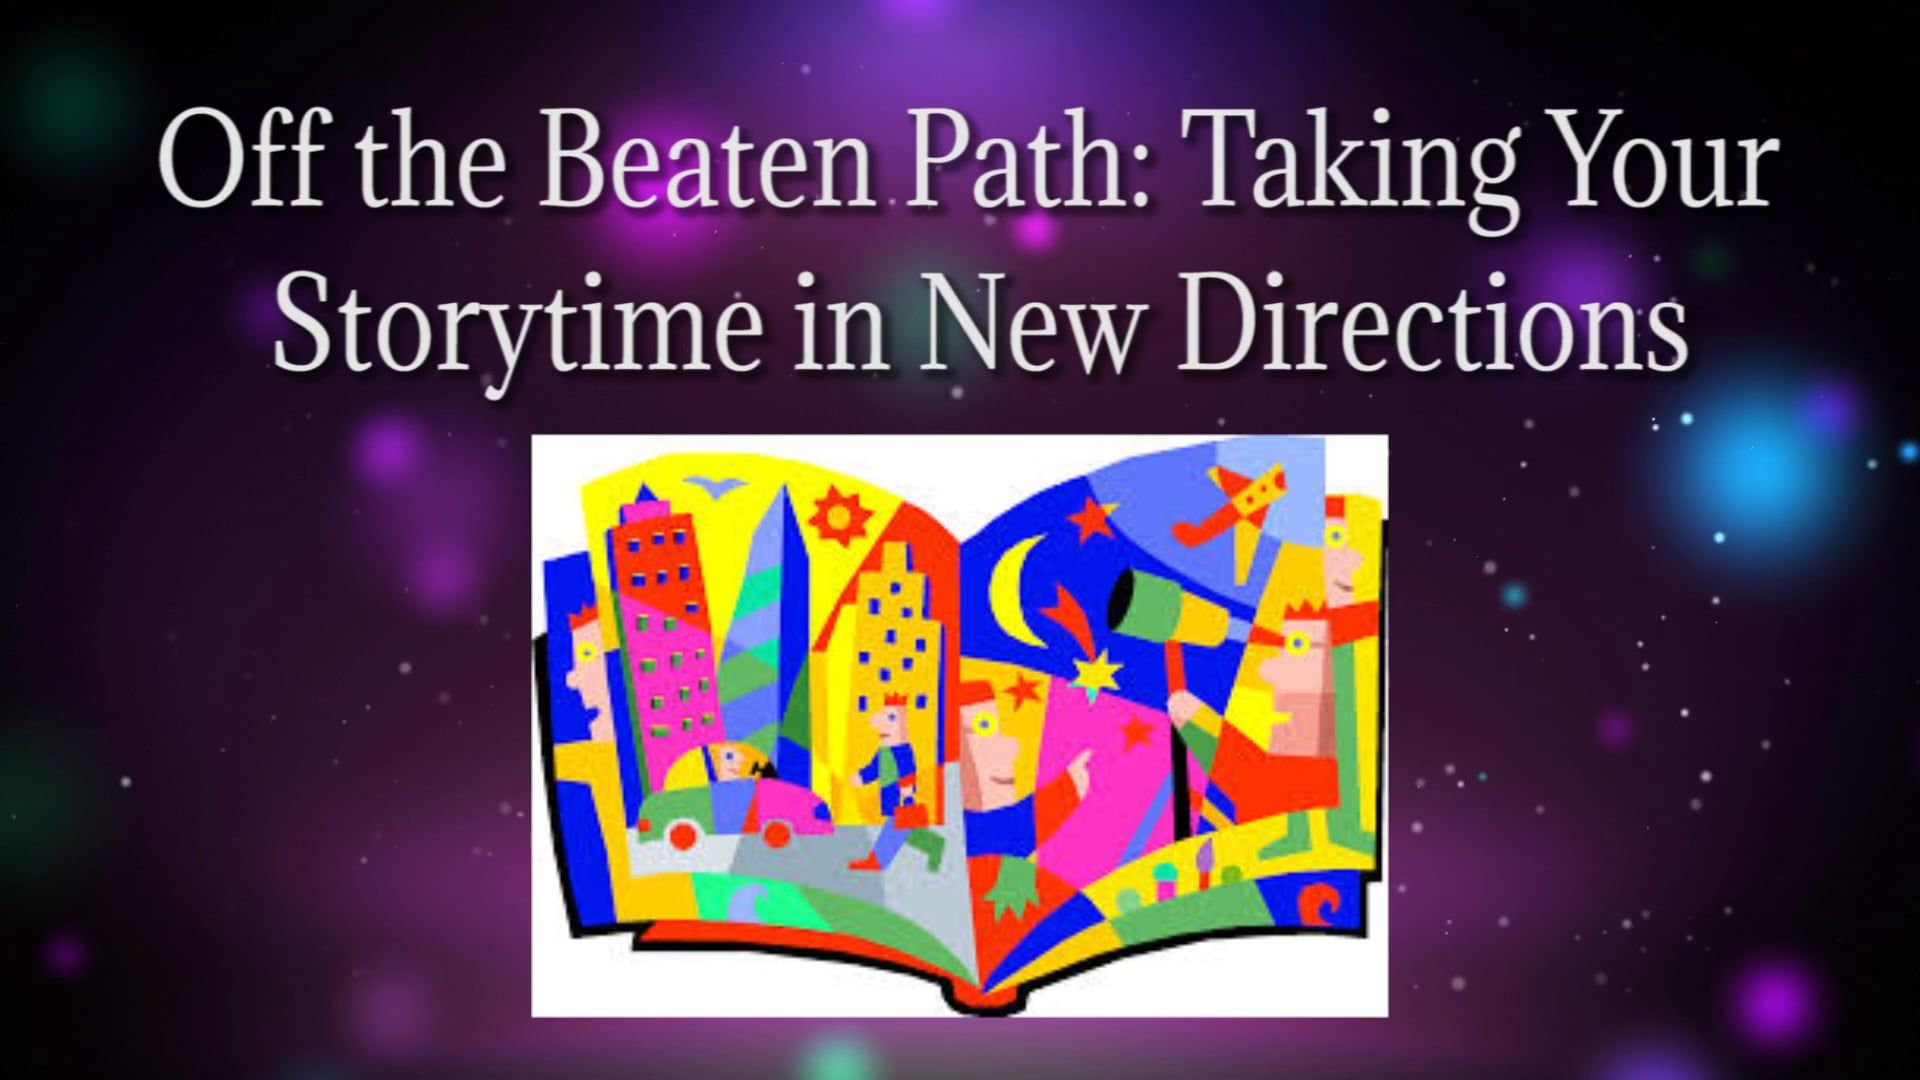 Off the Beaten Path: Taking Your Storytime in New Directions